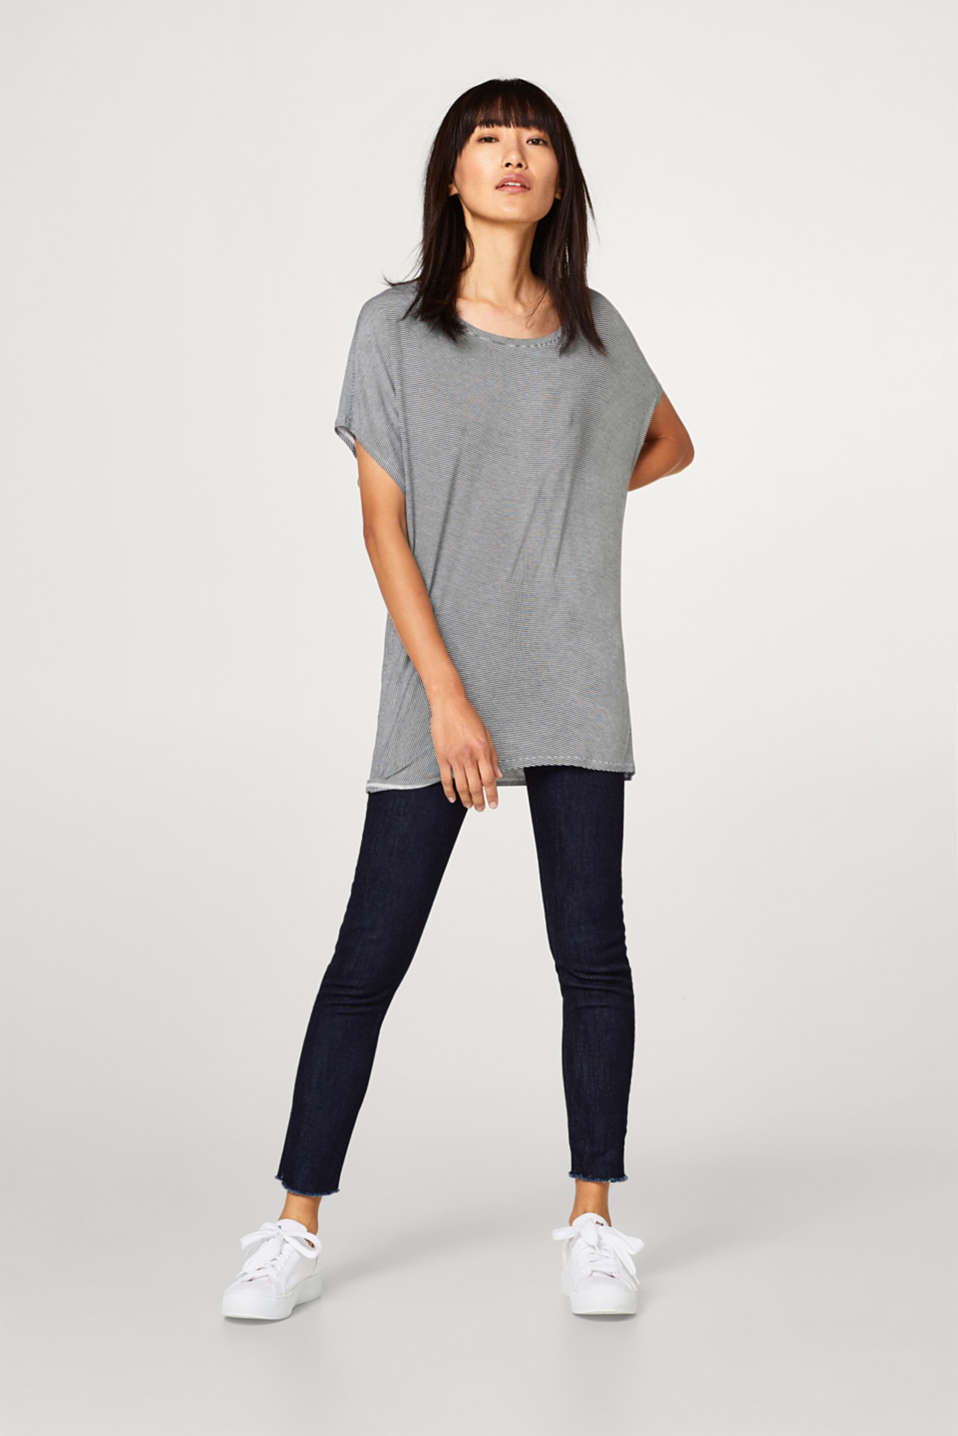 Silky top with an asymmetric hem